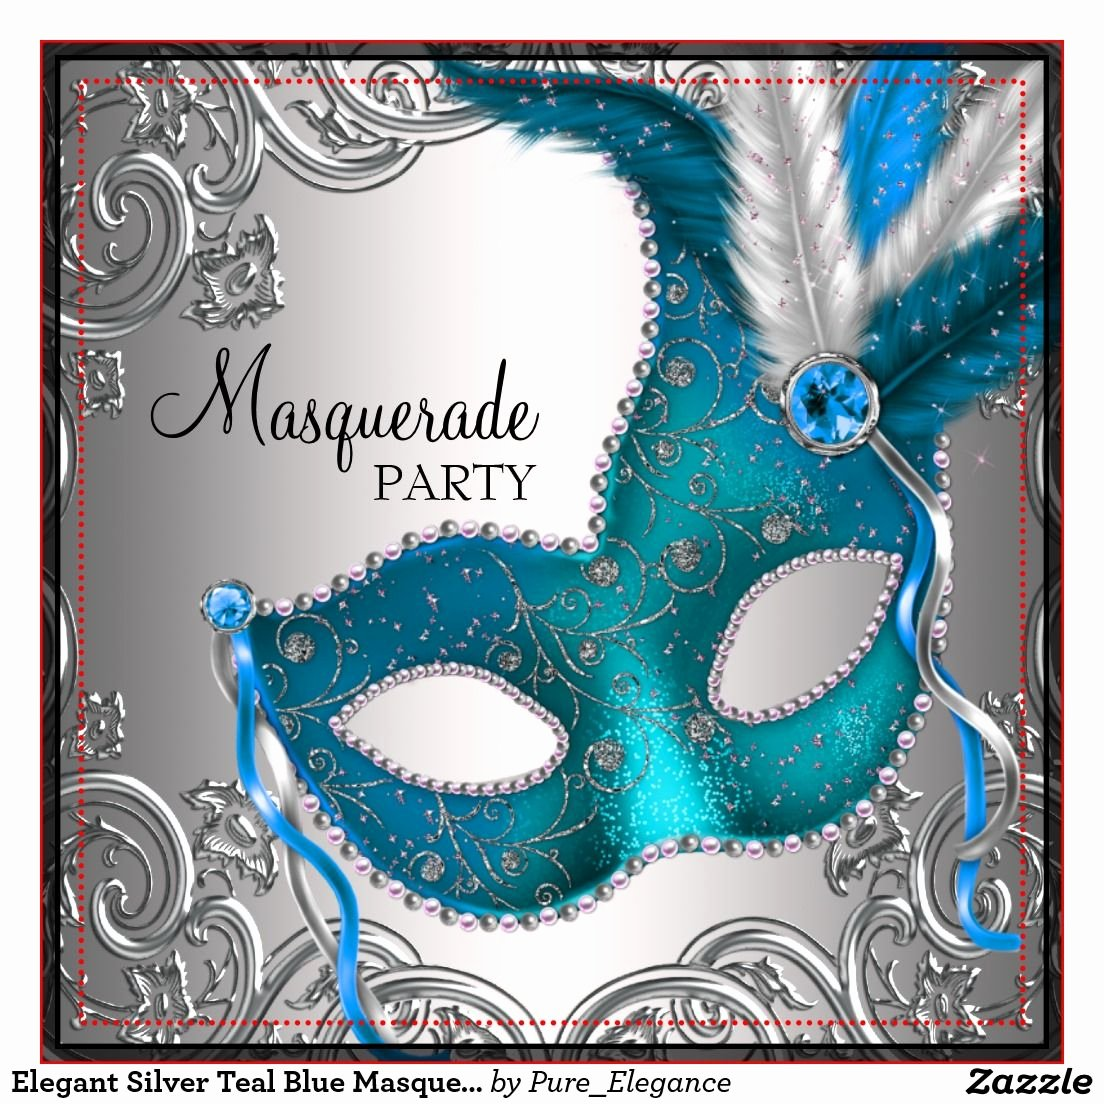 Masquerade Ball Invitations Wording New Masquerade Party Invitations Google Search